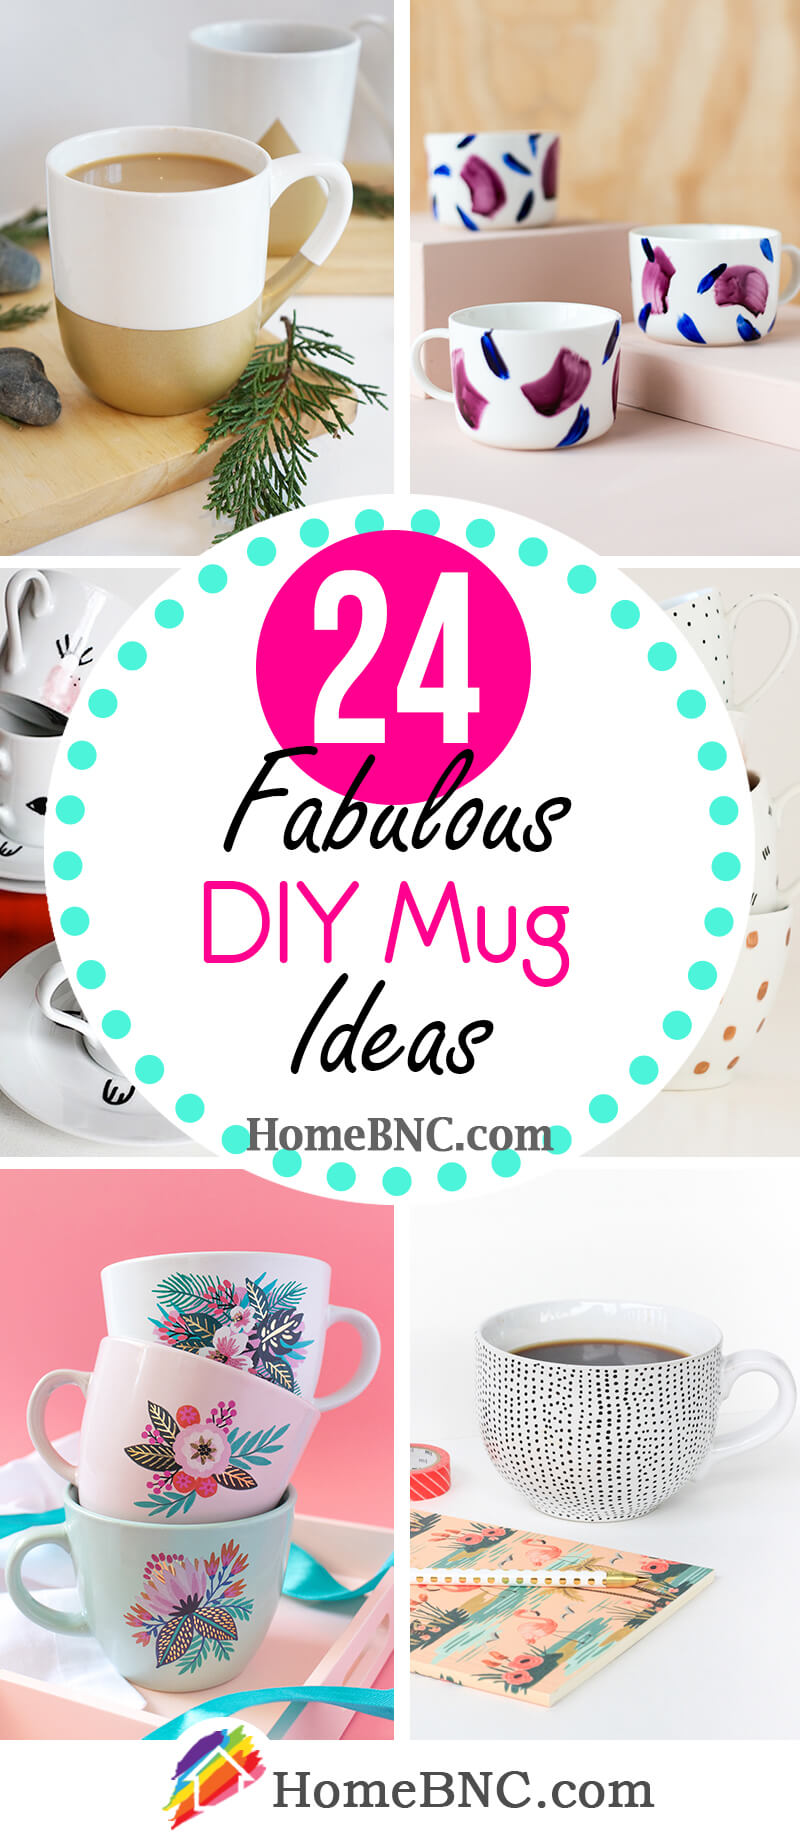 Best DIY Mug Ideas and Decorations